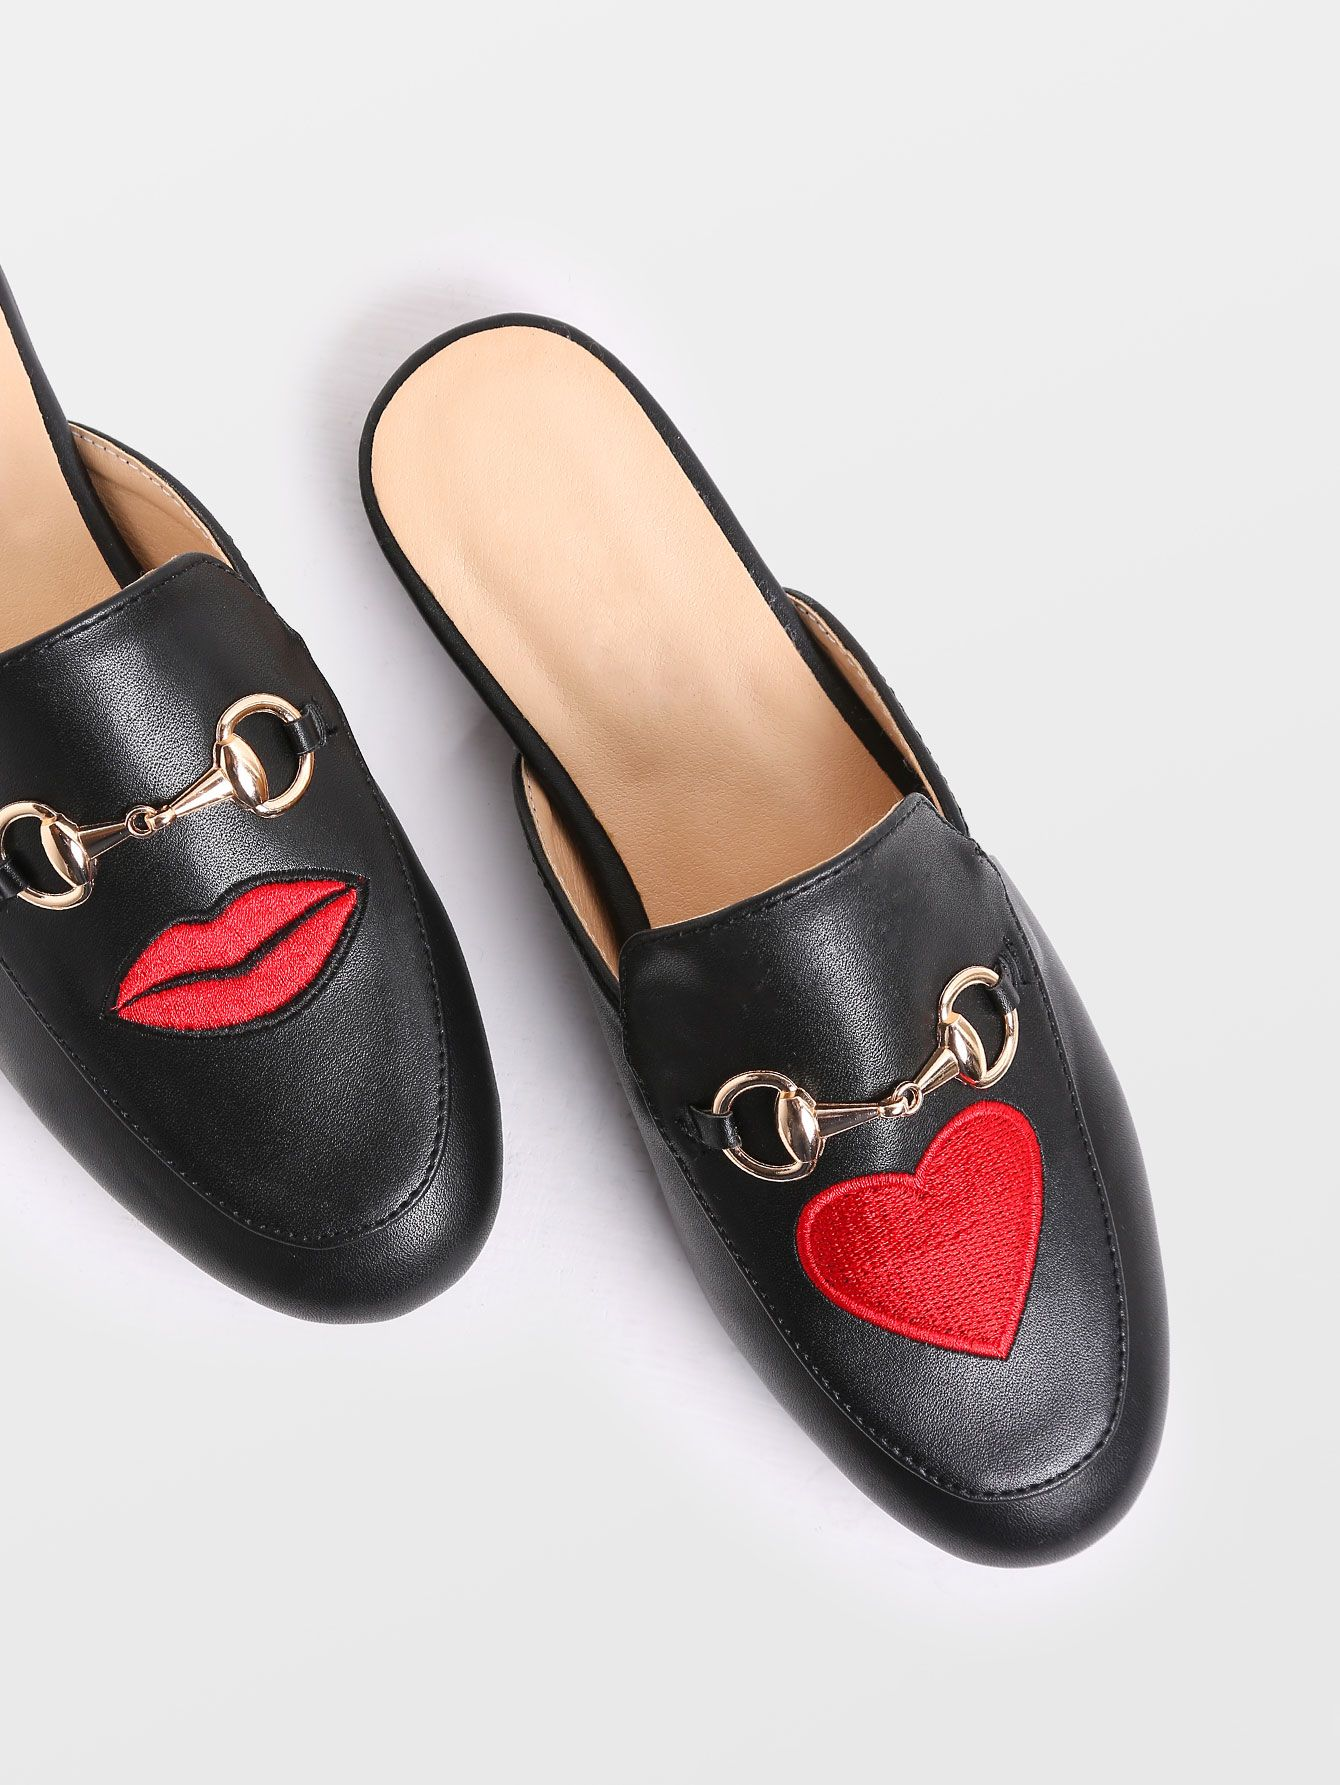 e6ad1818435 Shop Black Lip And Heart Embroidery Loafer Slippers online. SheIn ...